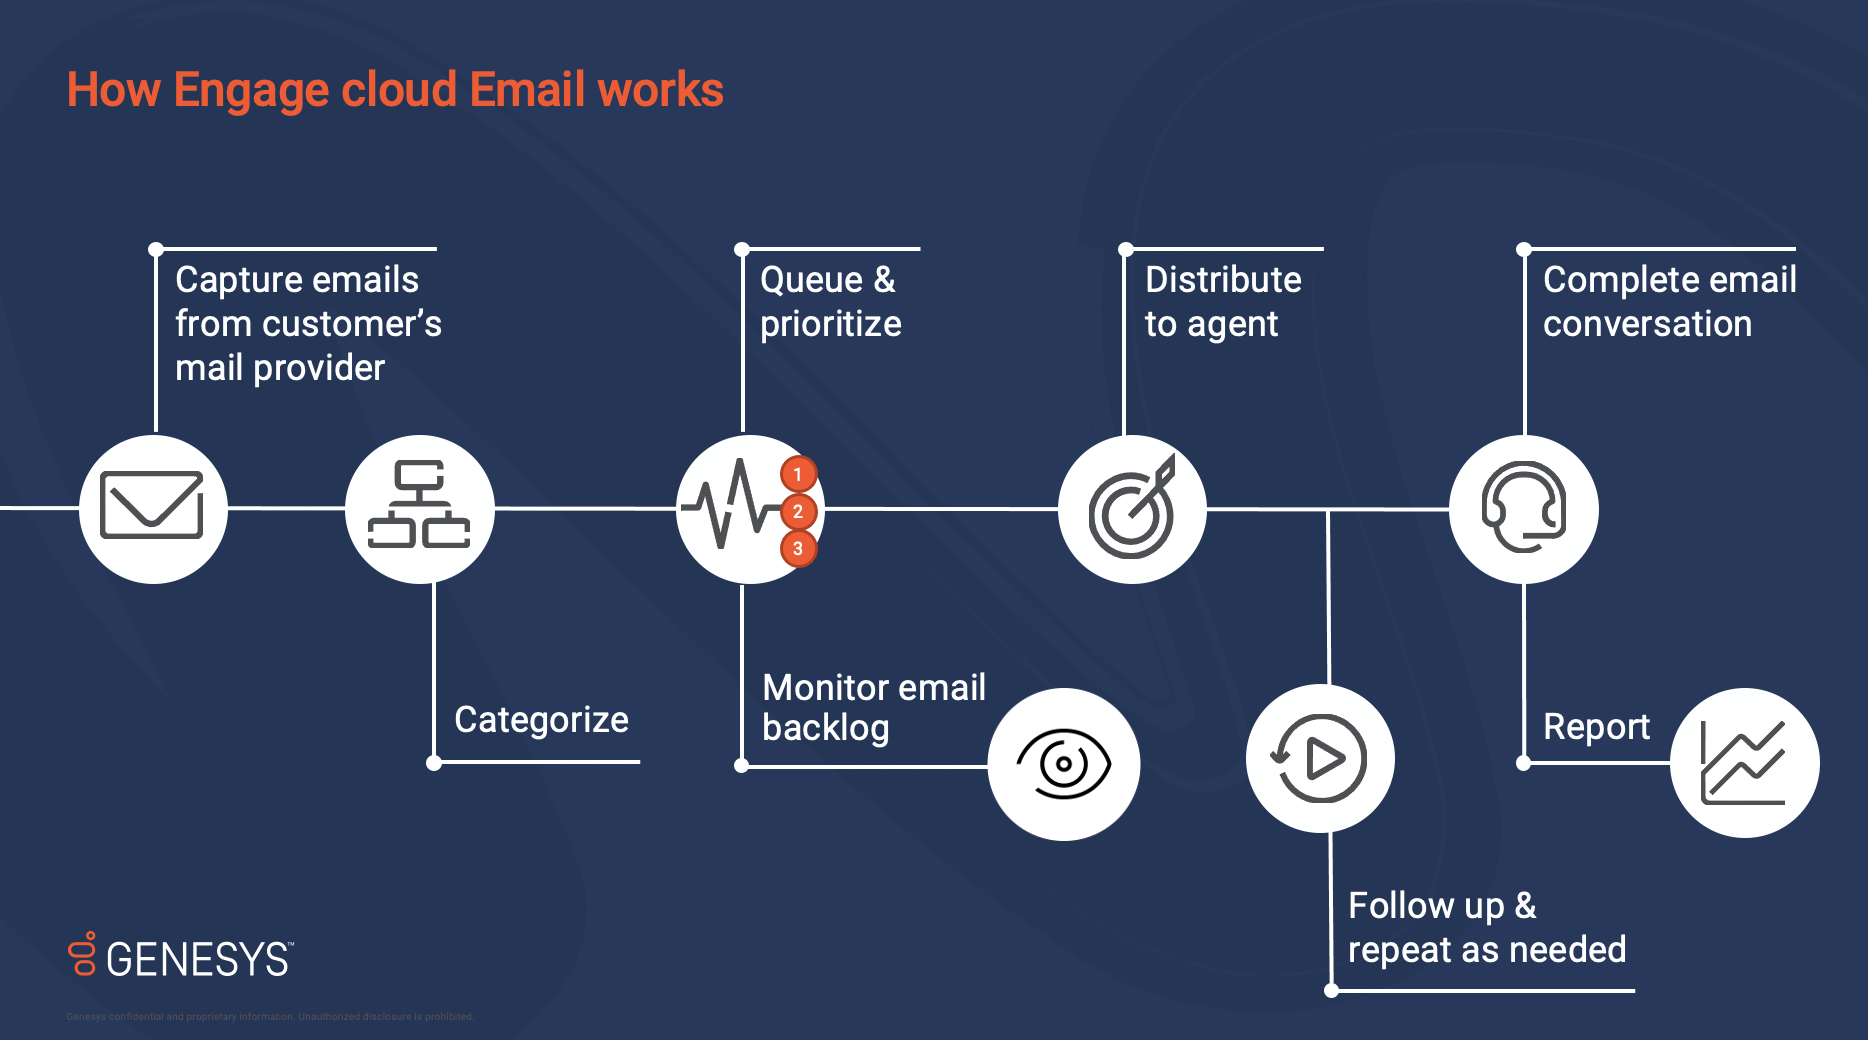 Engage cloud email blog